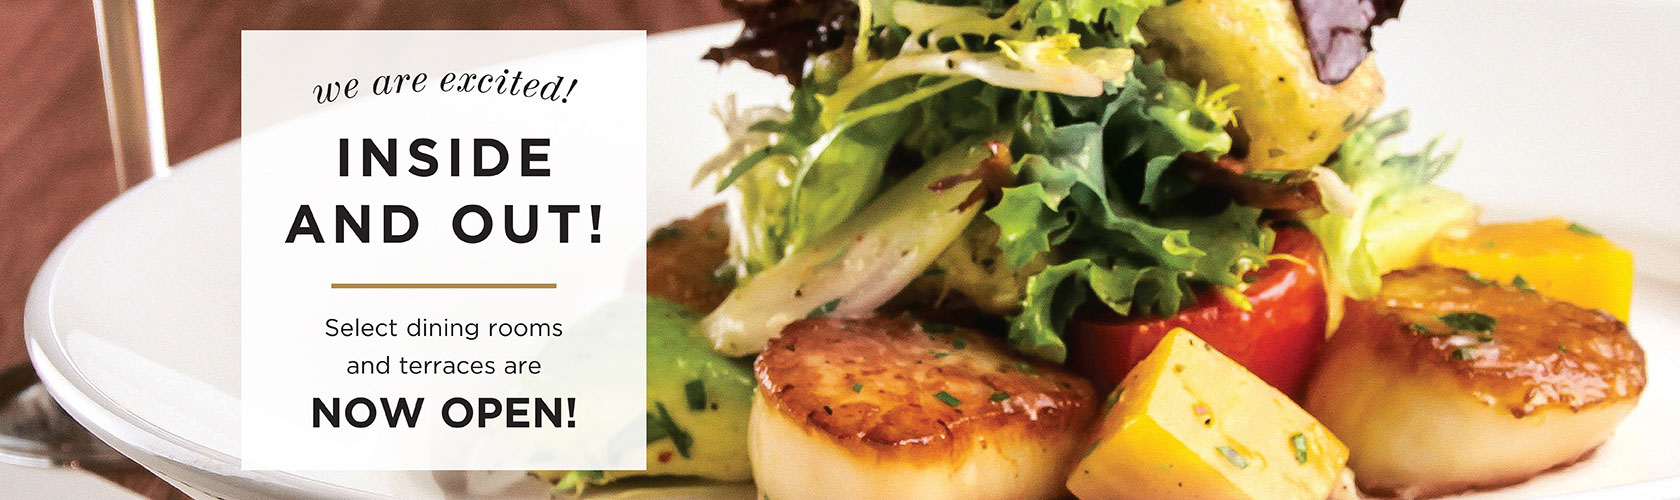 decorative image of scallops with lettuce on top and a message that reads We're Excited inside and out! Select dining rooms and terraces are now open!